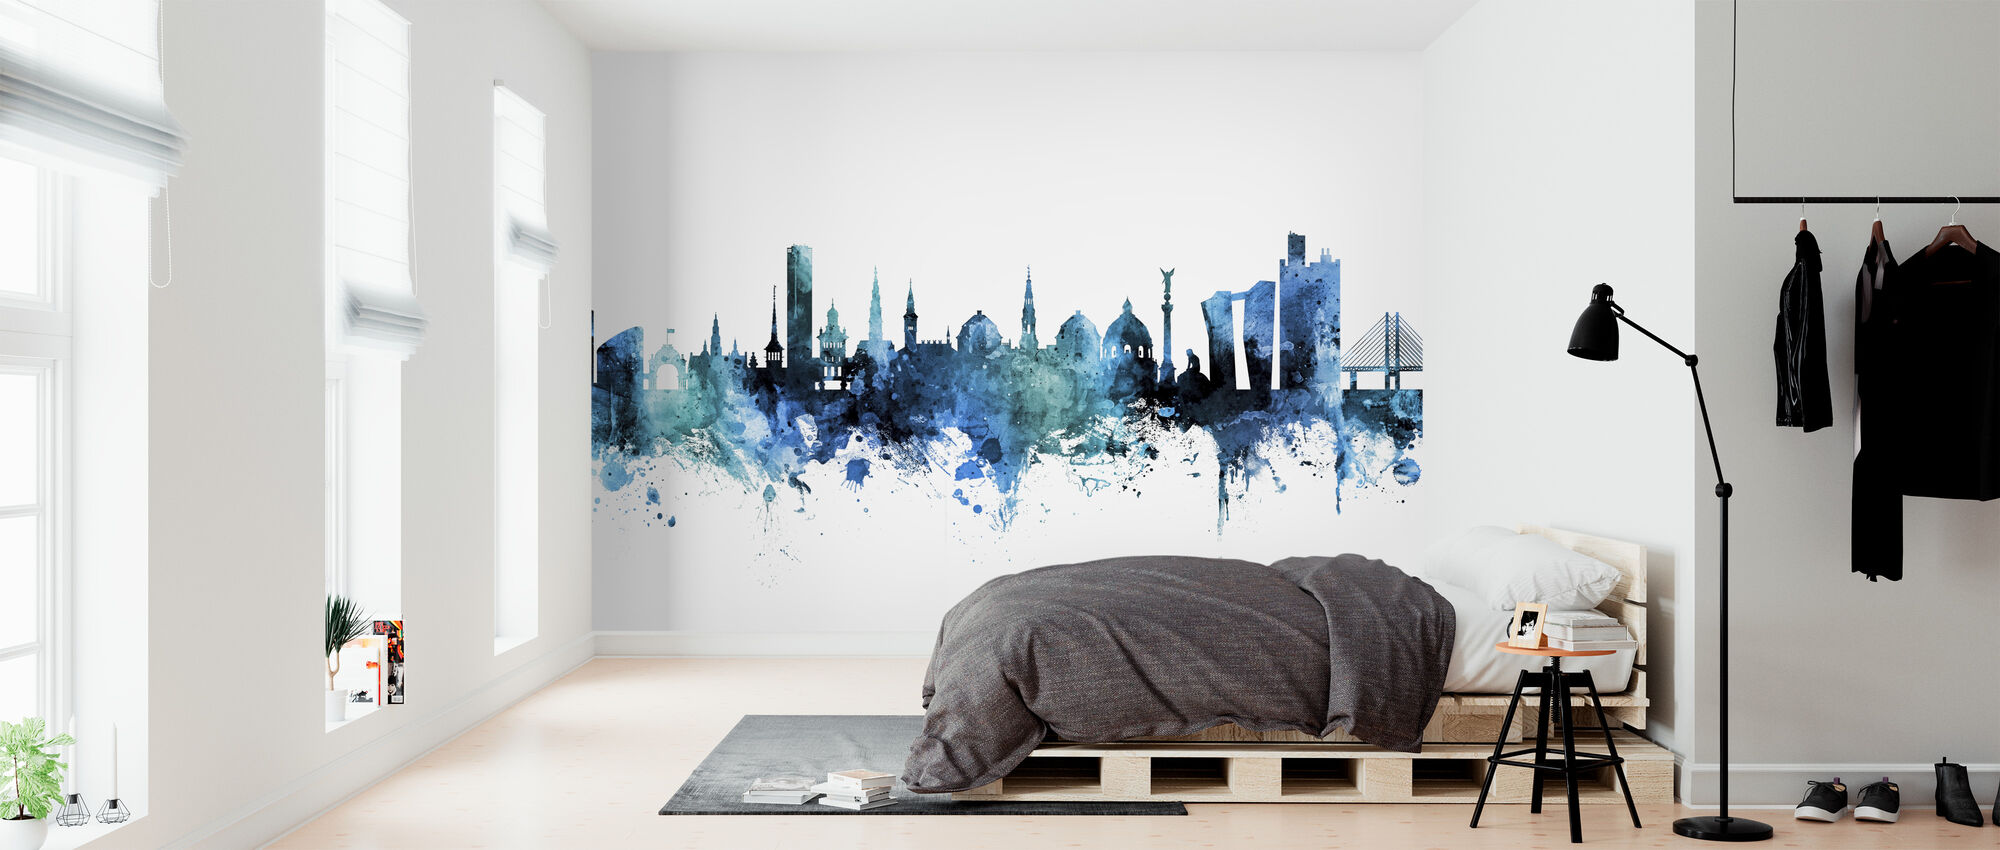 Copenhagen Denmark Skyline - Wallpaper - Bedroom